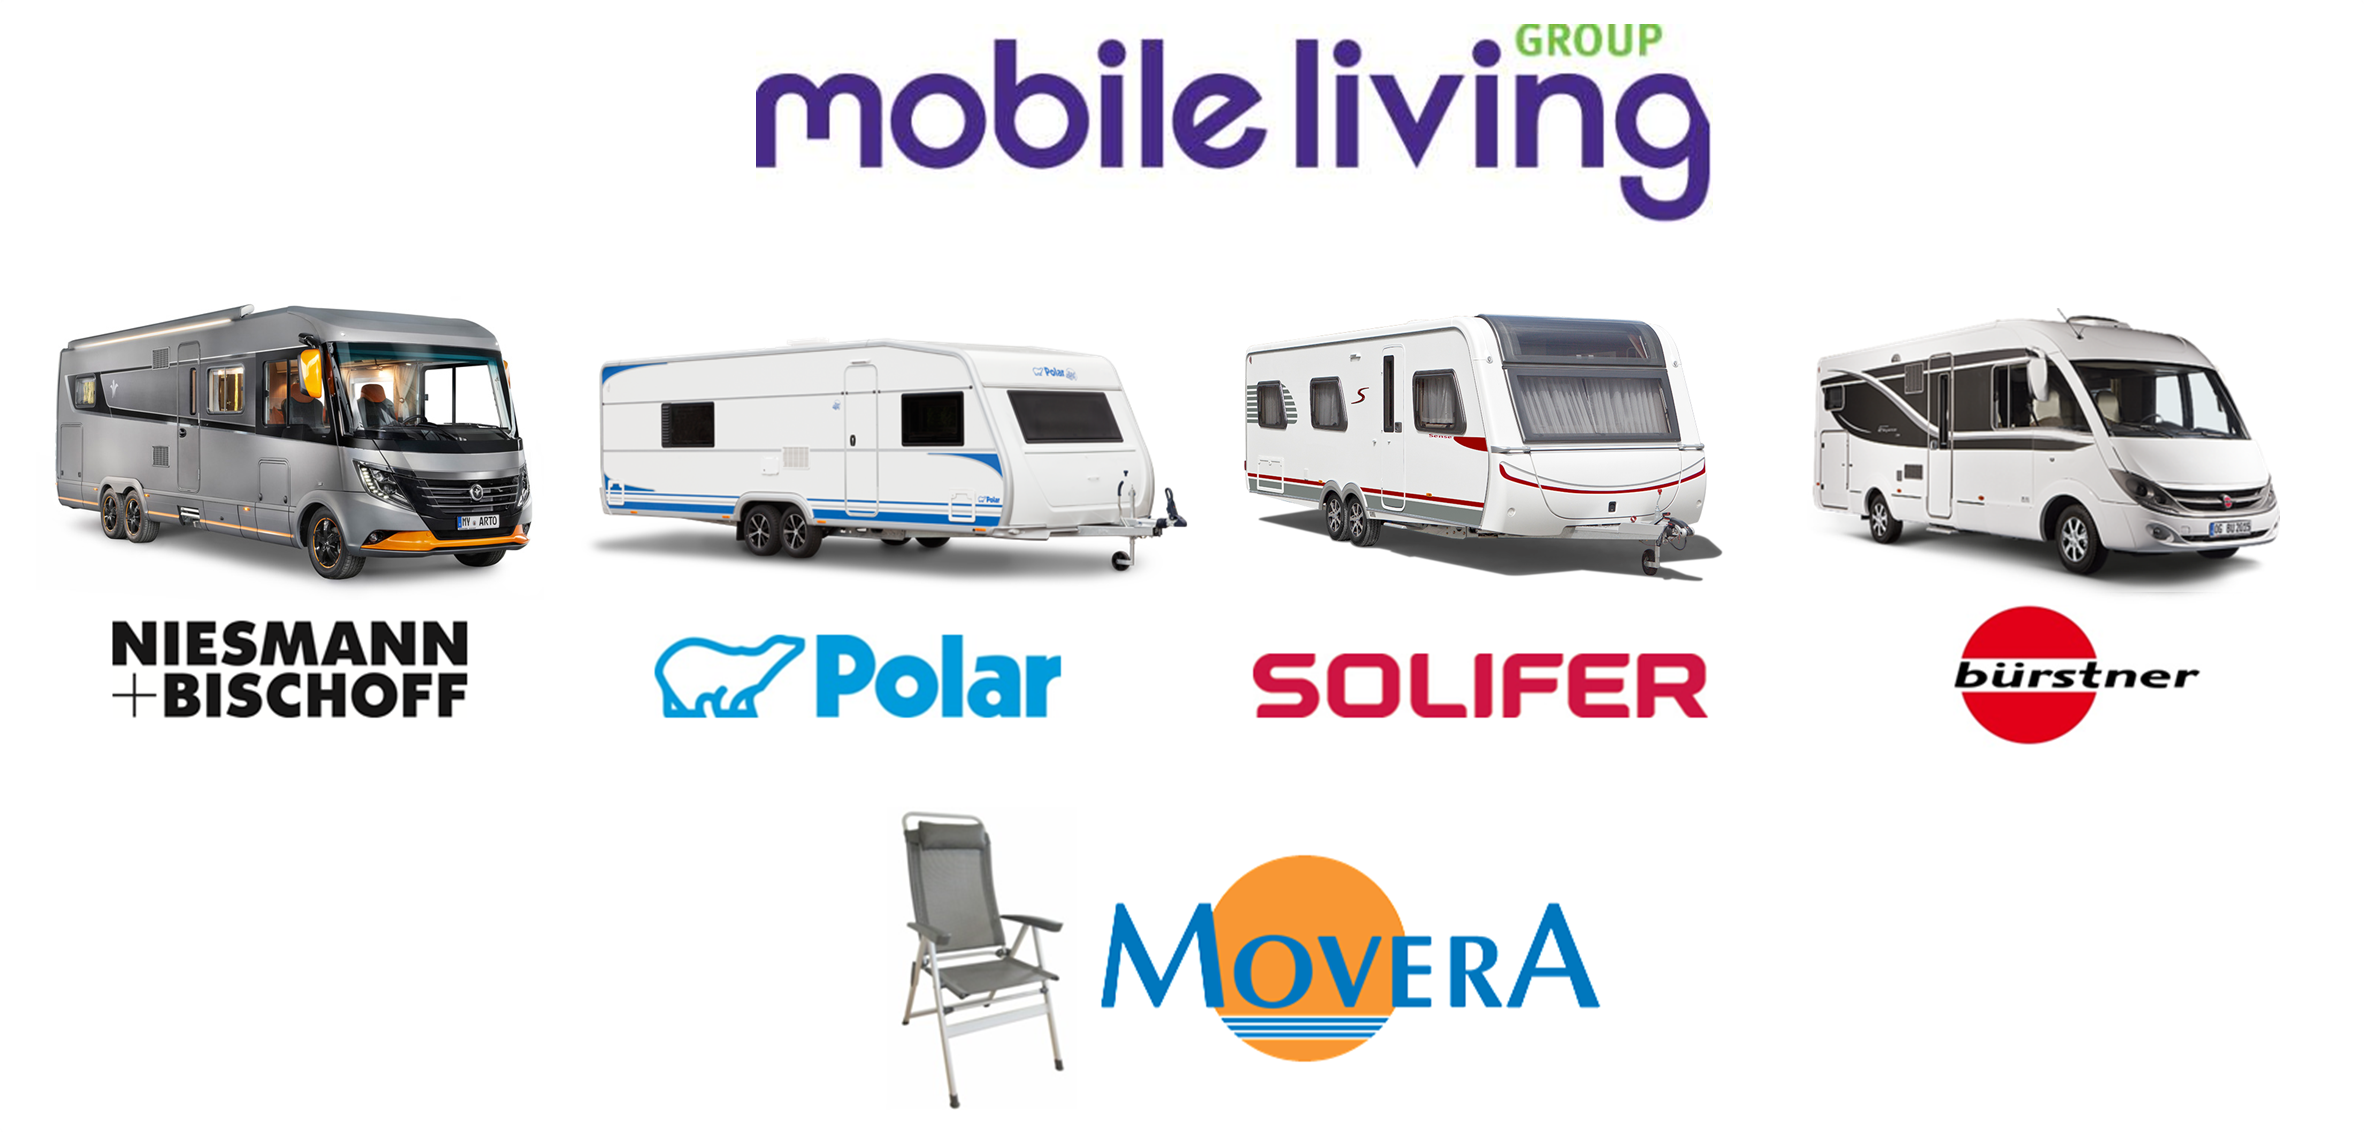 Mobile Living Group i konkurs